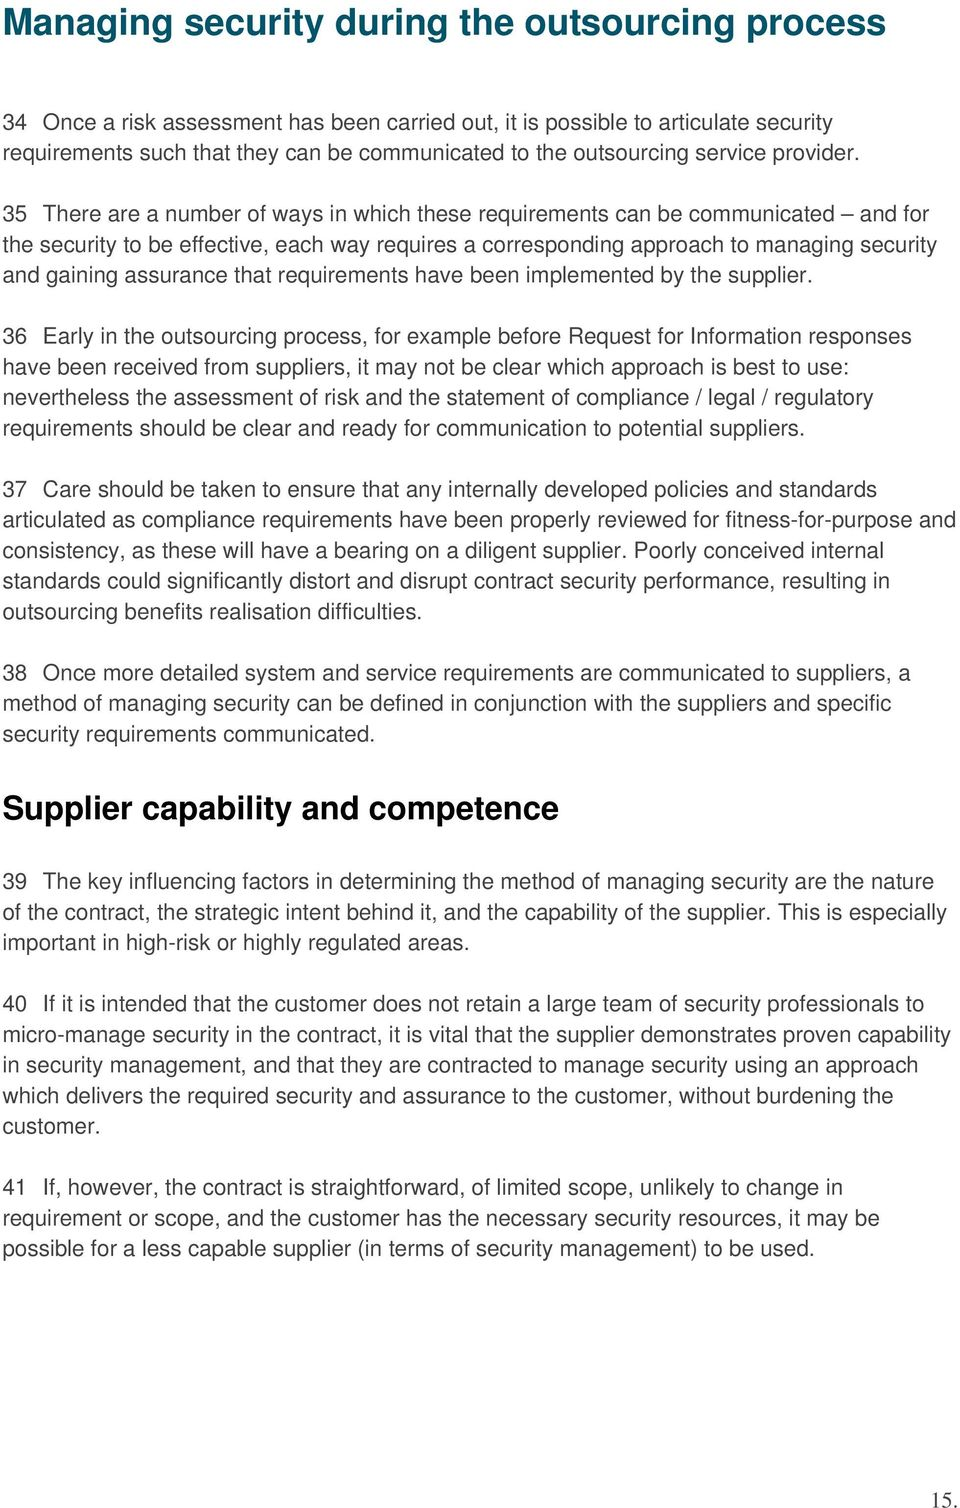 35 There are a number of ways in which these requirements can be communicated and for the security to be effective, each way requires a corresponding approach to managing security and gaining